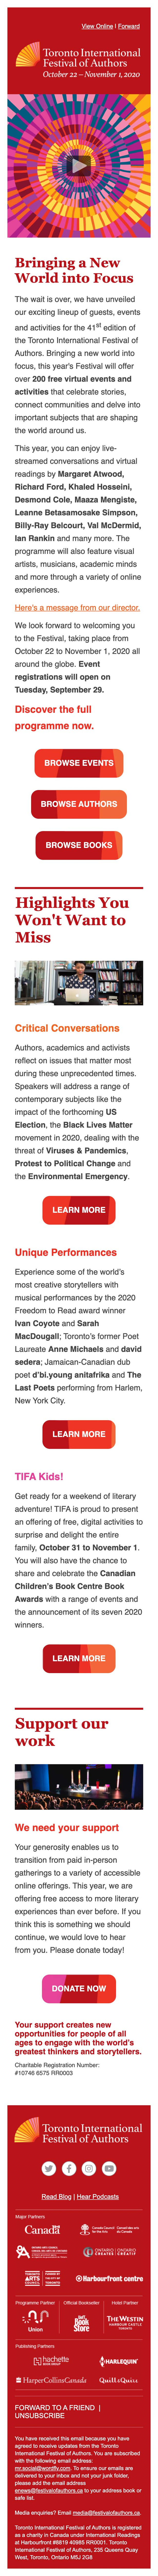 Programme Unveiled! Presenting the 41st Toronto International Festival of Authors - mobile view